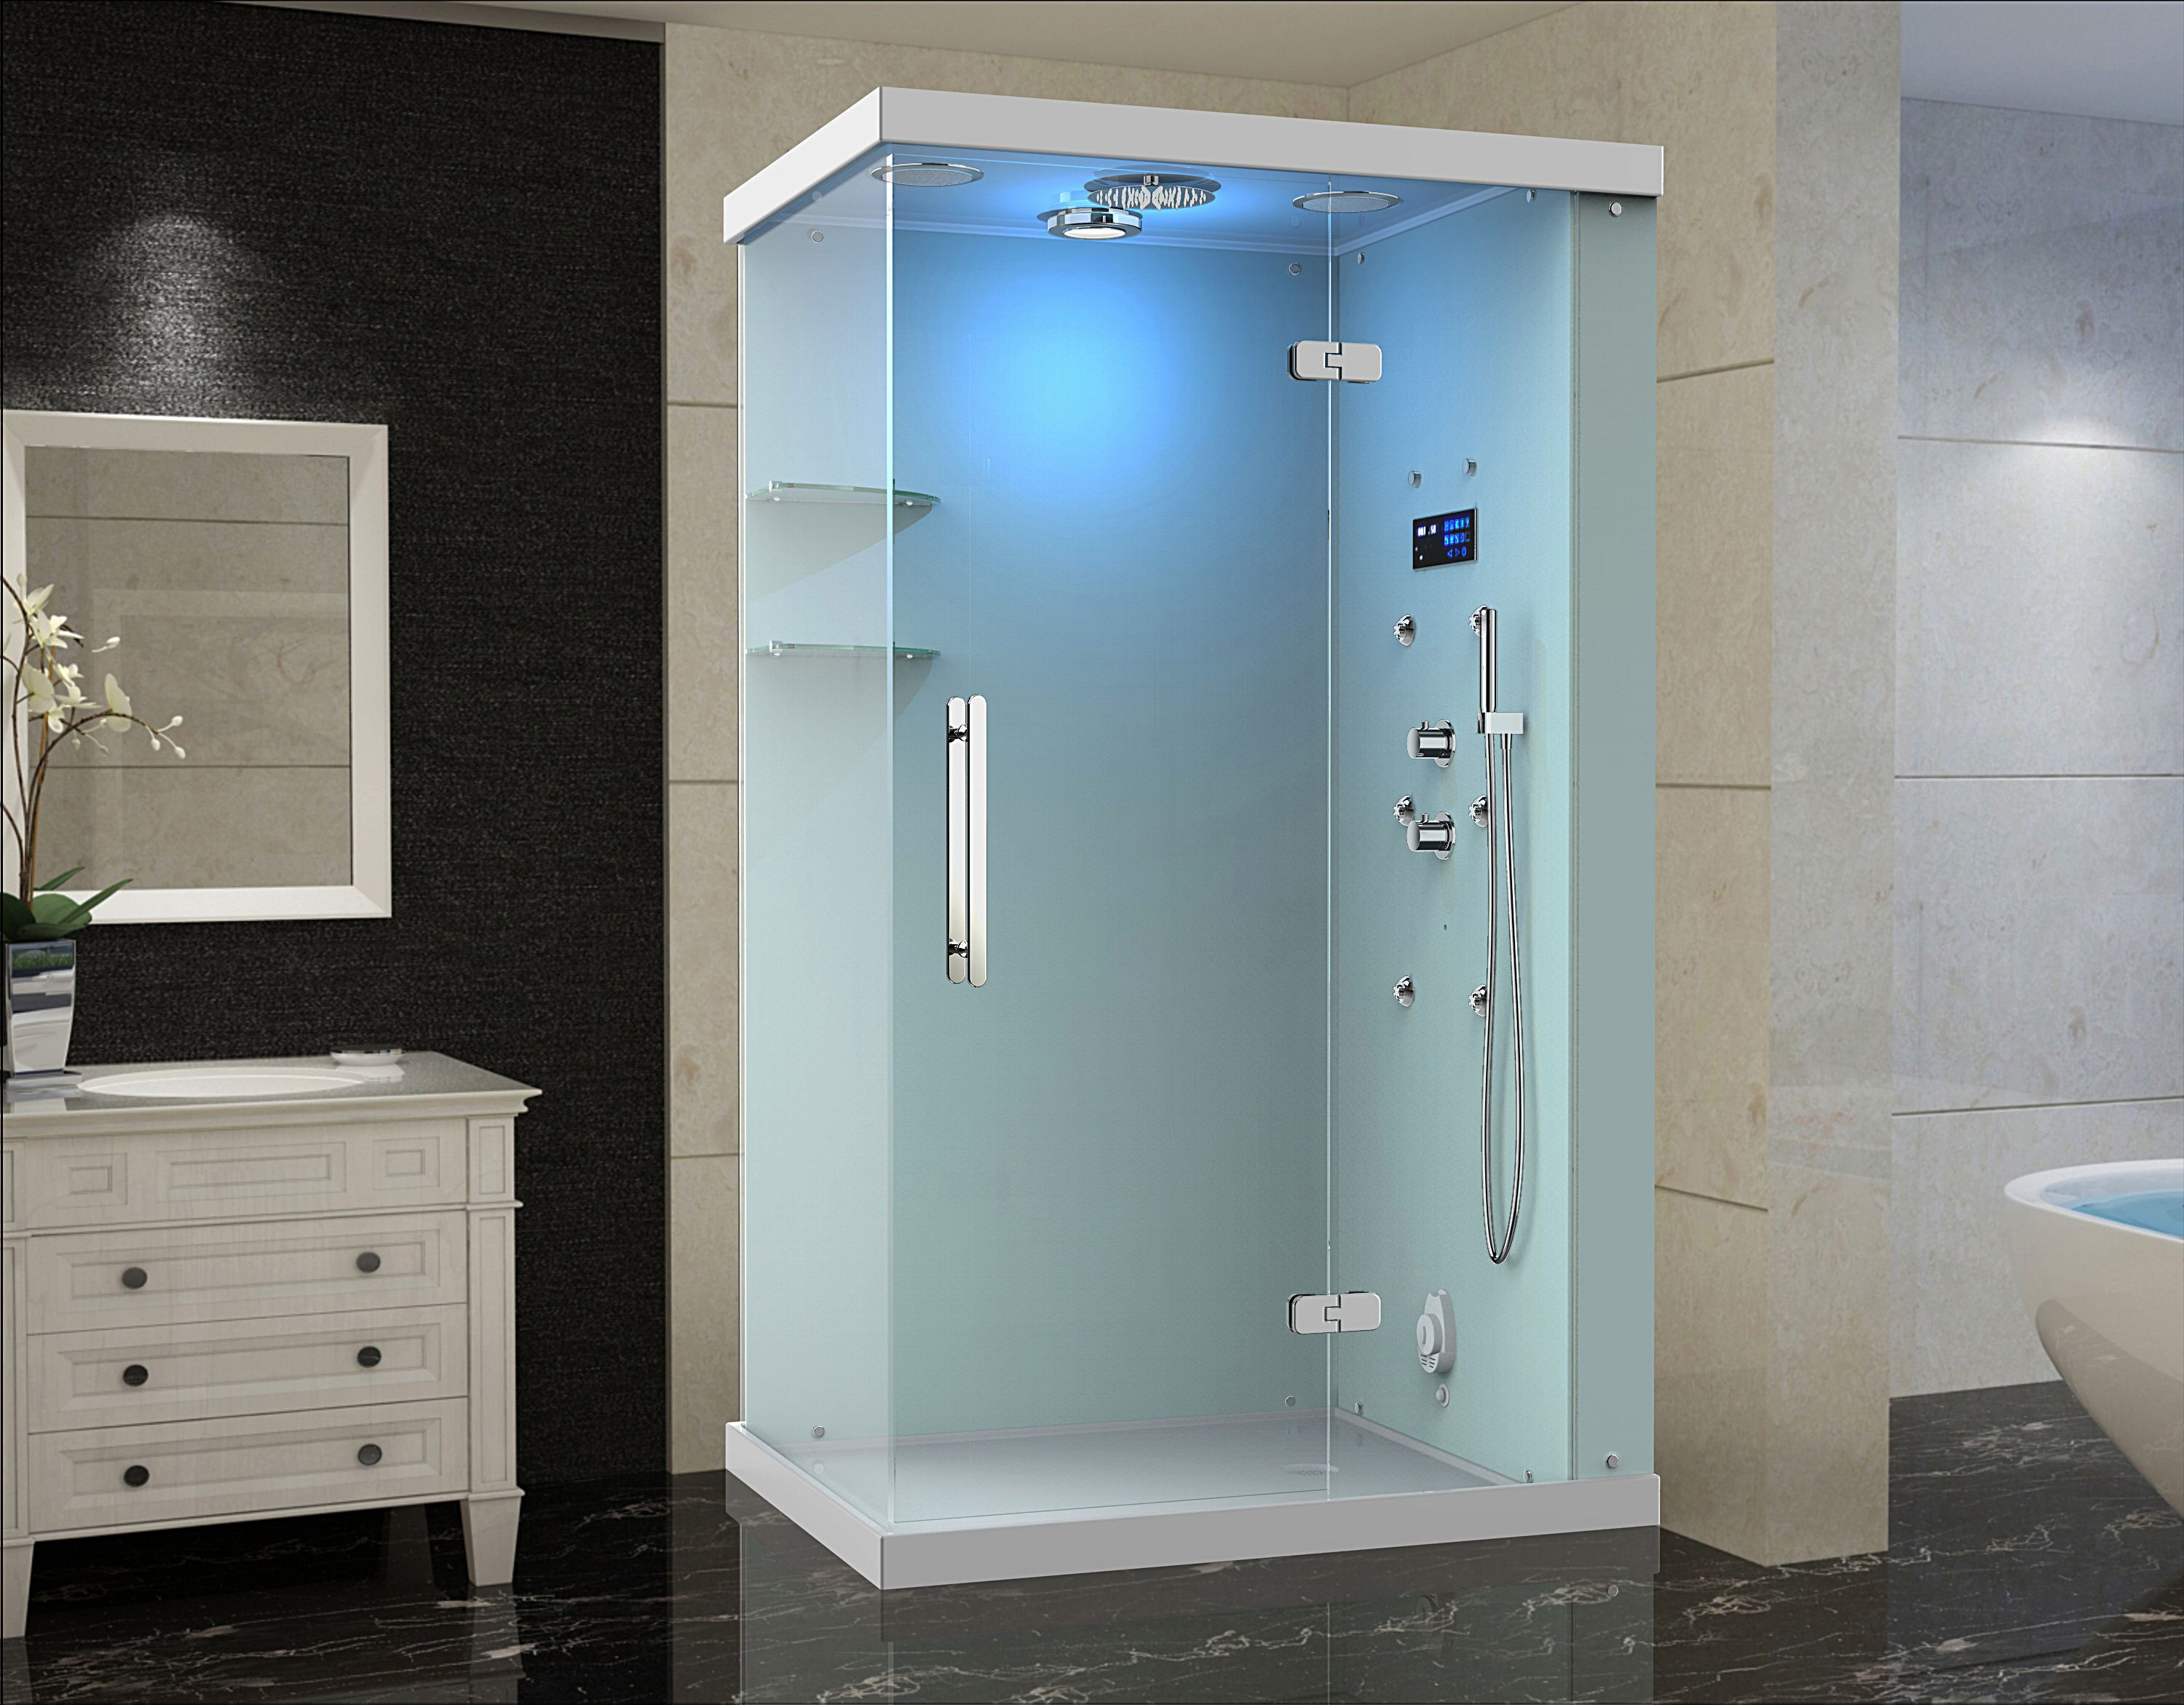 Shower Unit With Body Jets | Shapeyourminds.com